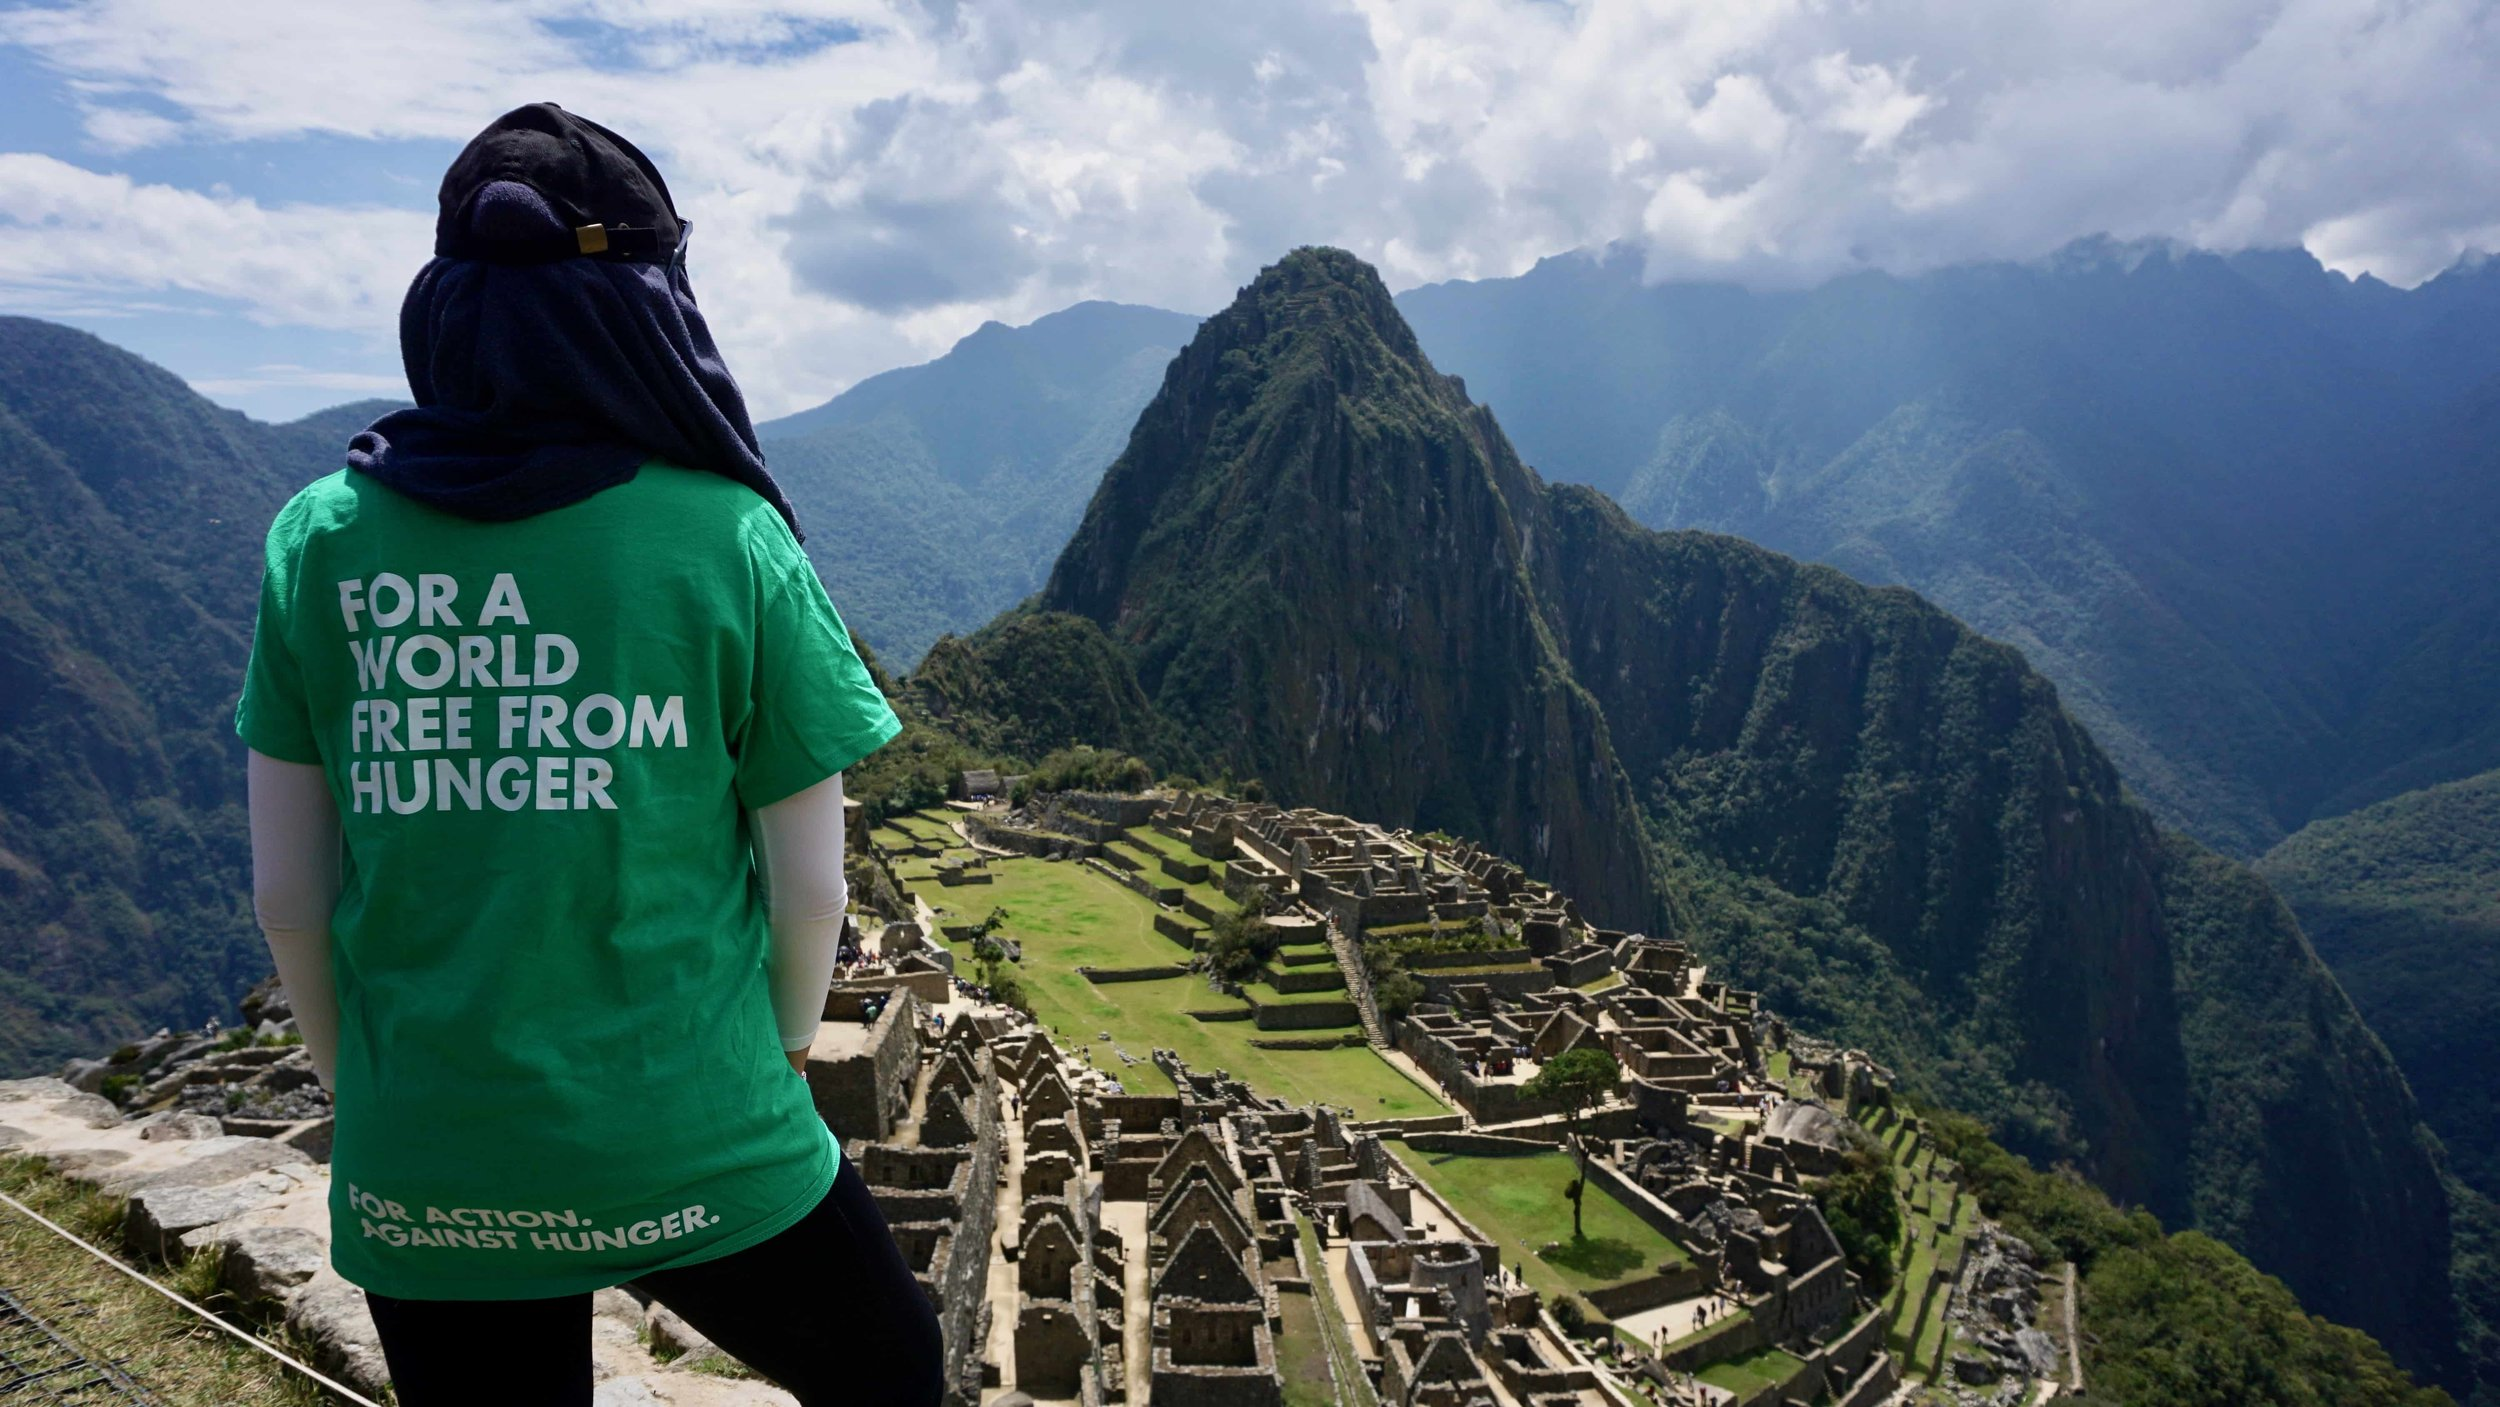 Machu Picchu - Explore the lost city of the incas